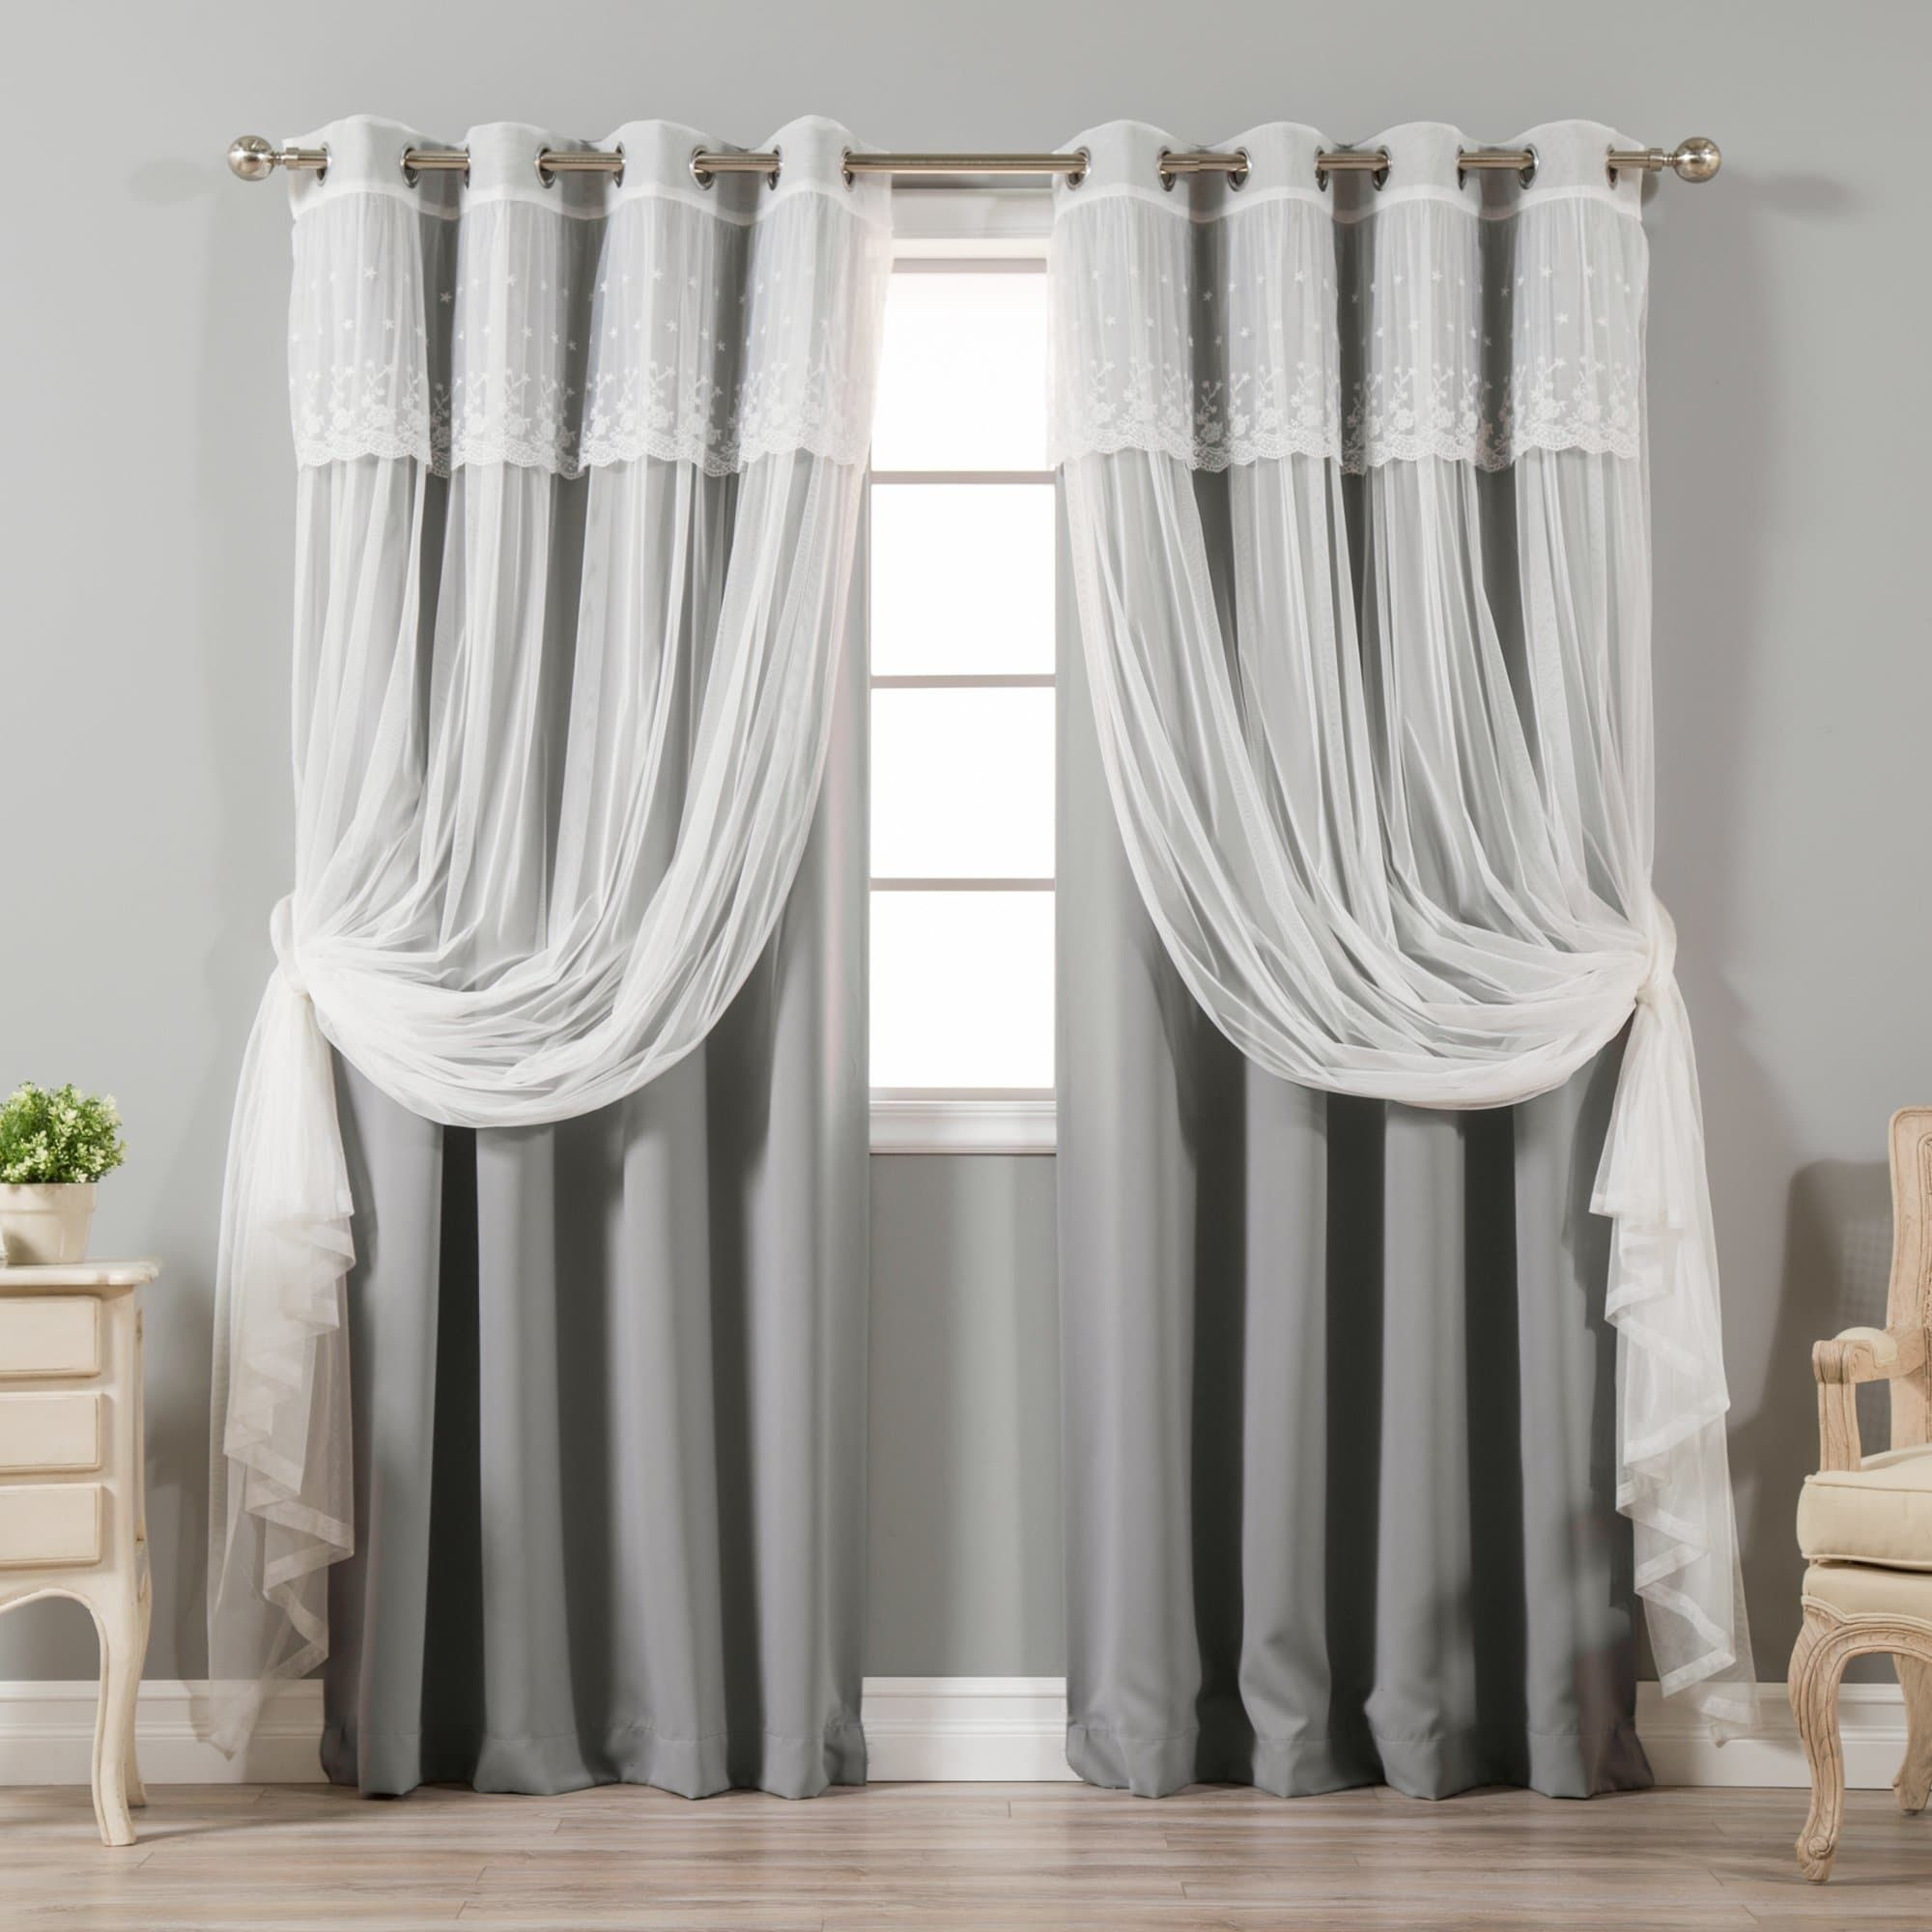 Aurora home mix match tulle sheer with attached valance - Rideaux salle a manger salon ...